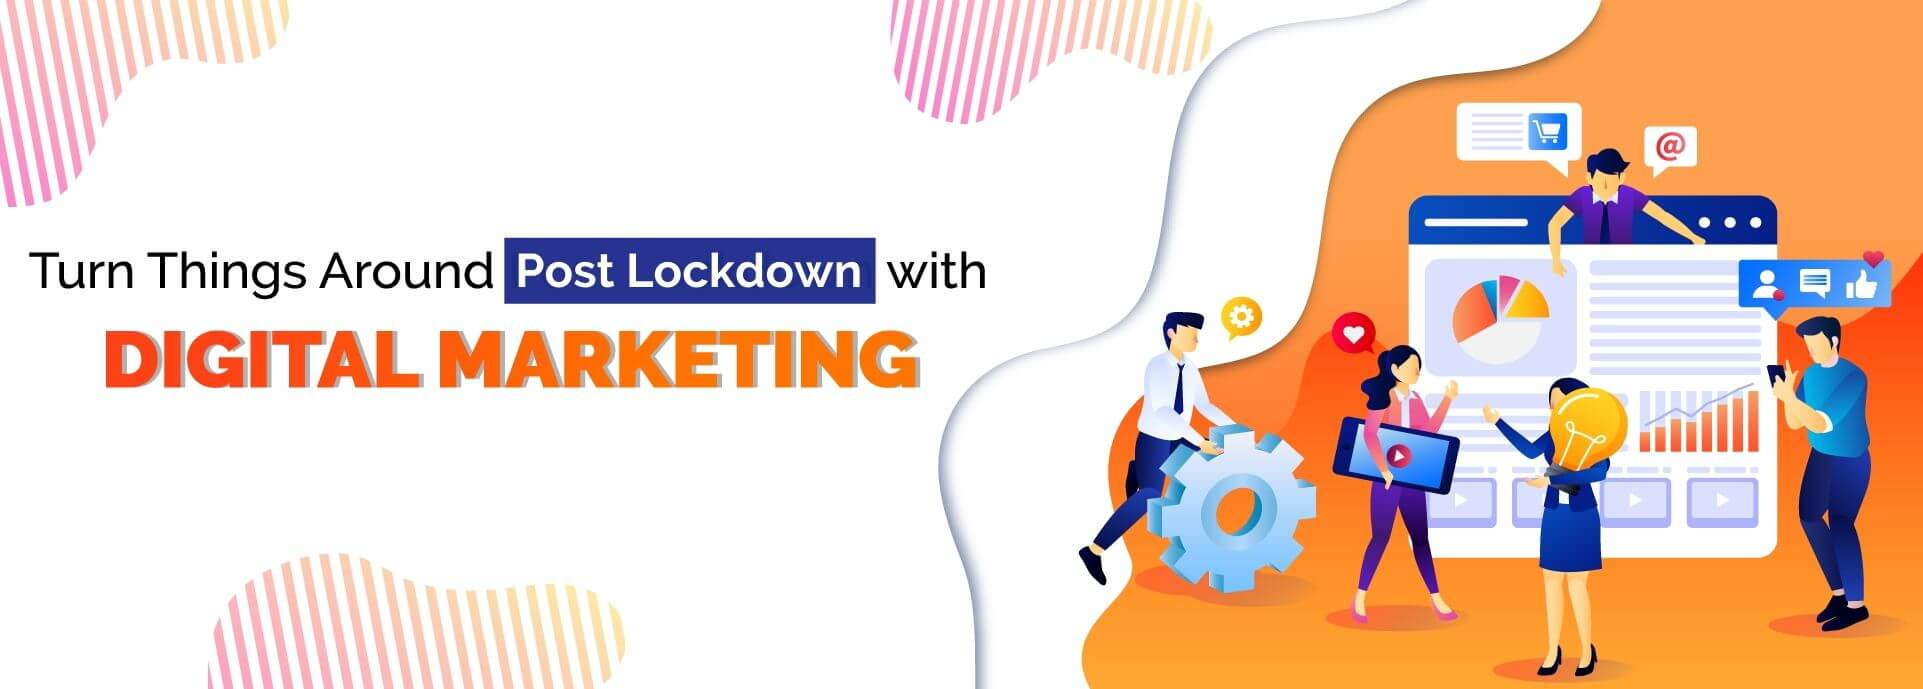 Turn Things Around with Digital Marketing Services Post Lockdown